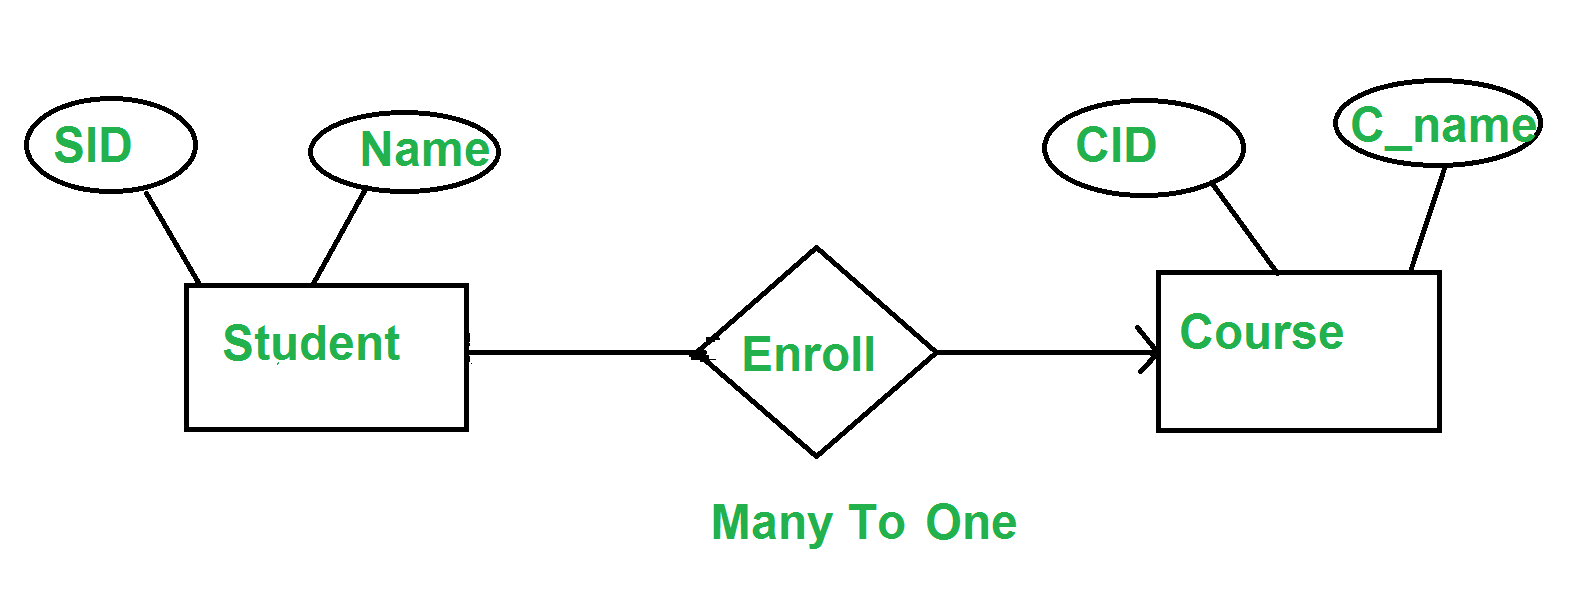 Minimization Of Er Diagrams - Geeksforgeeks with regard to One To Many Symbol